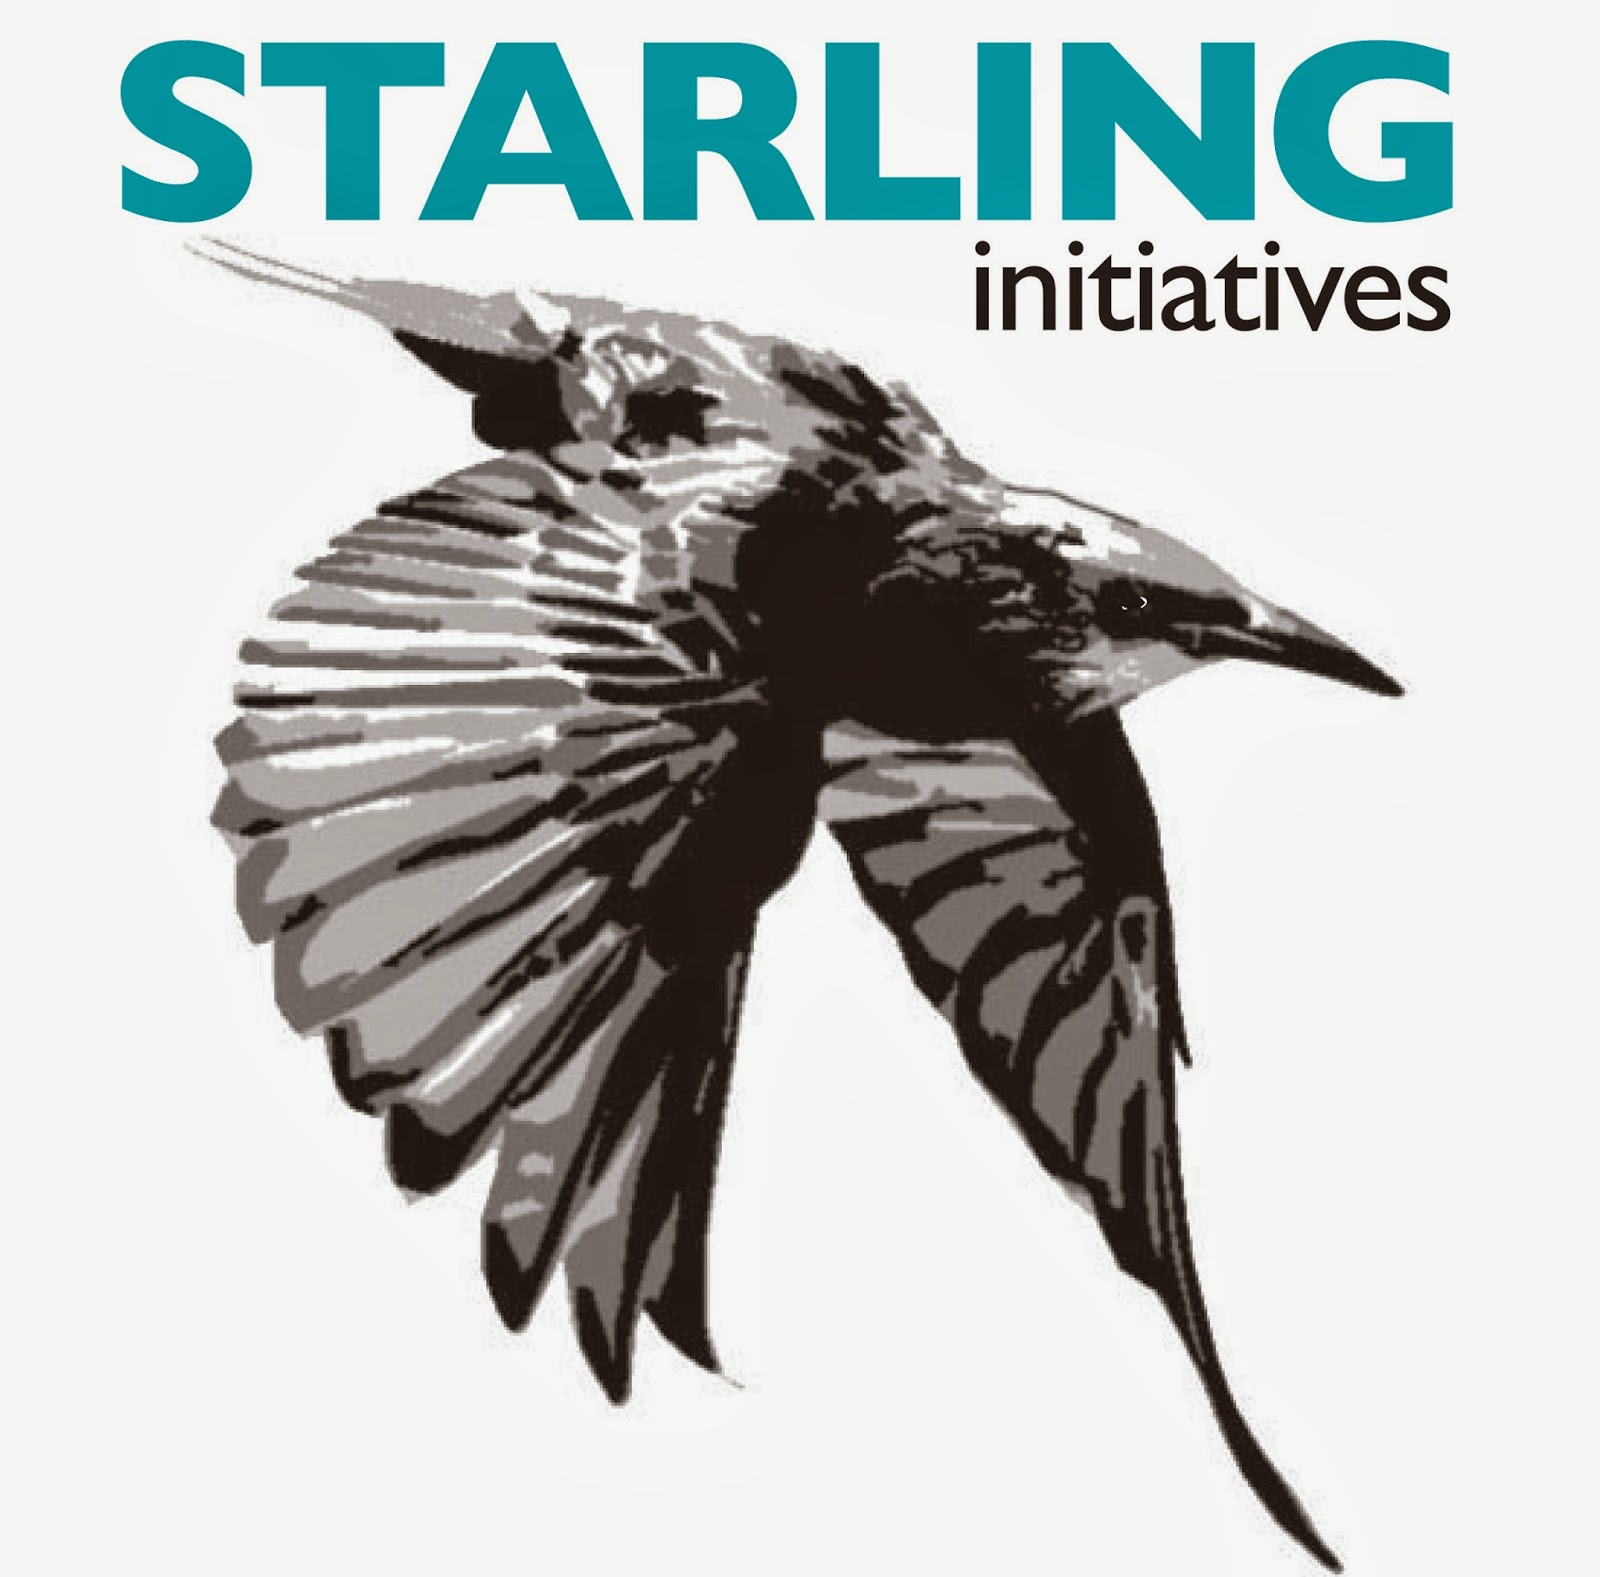 Cole-Slaw: Why Call This New Ministry Venture Starling Initiatives?